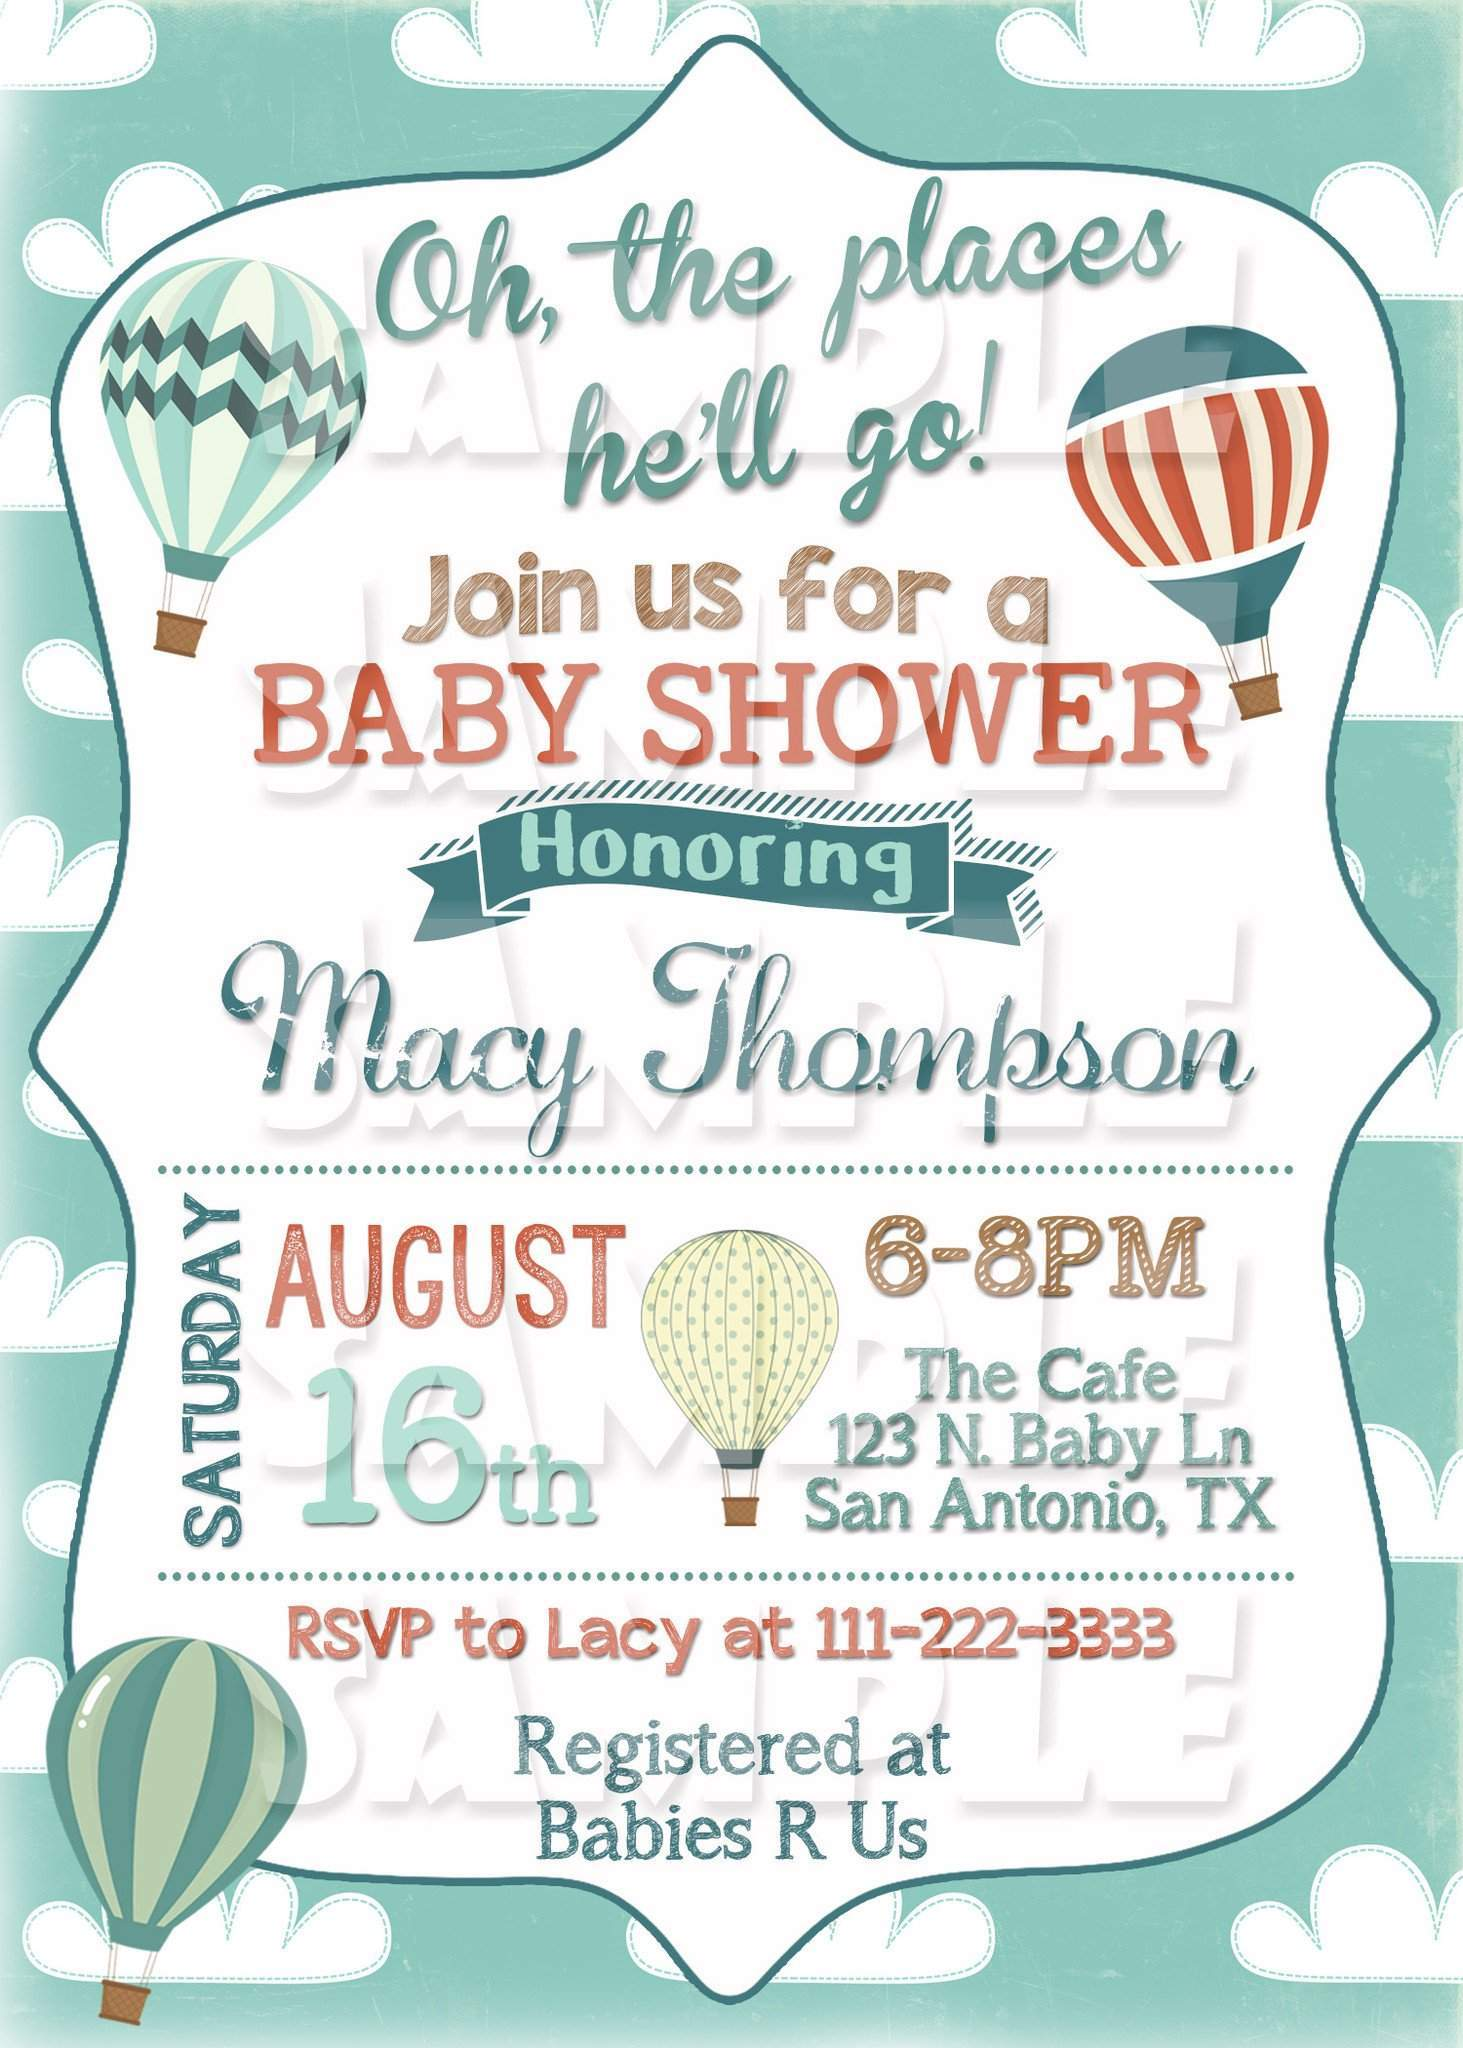 photo relating to Baby Shower Invitation Printable named Oh The Spots Oneself Will Shift Youngster Shower Invitation - Incredibly hot Air Balloon Invite